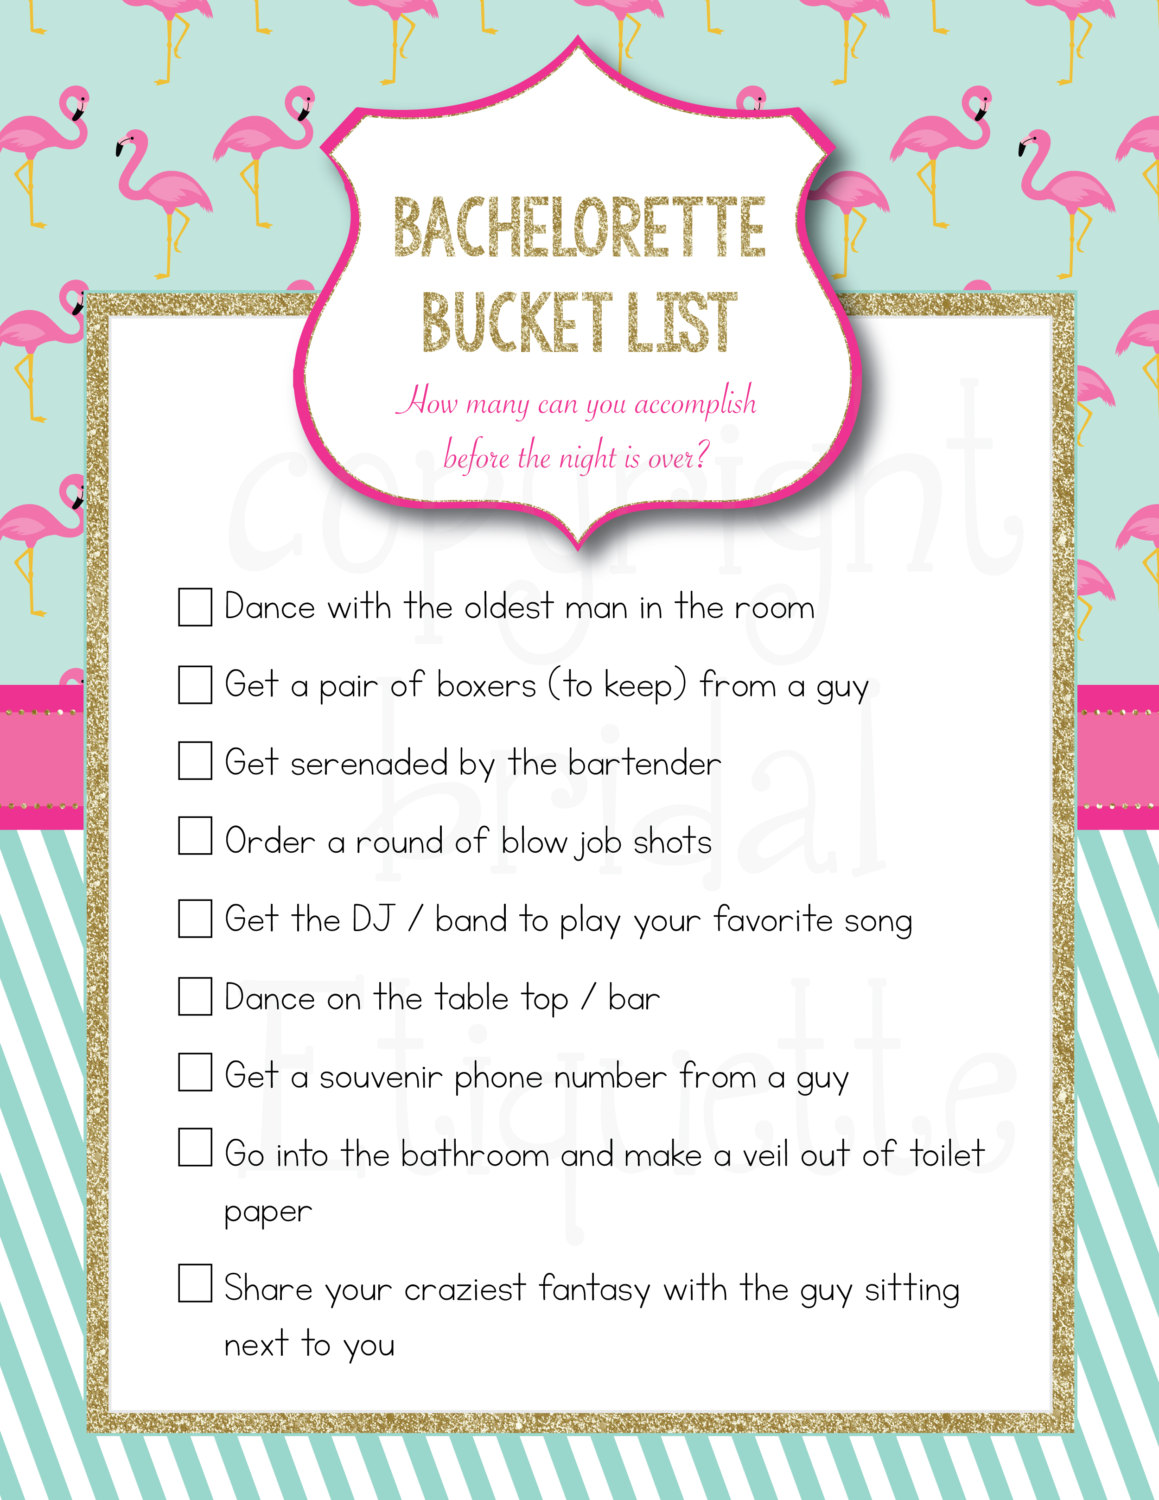 Flamingo-themed Bachelorette Bucket List